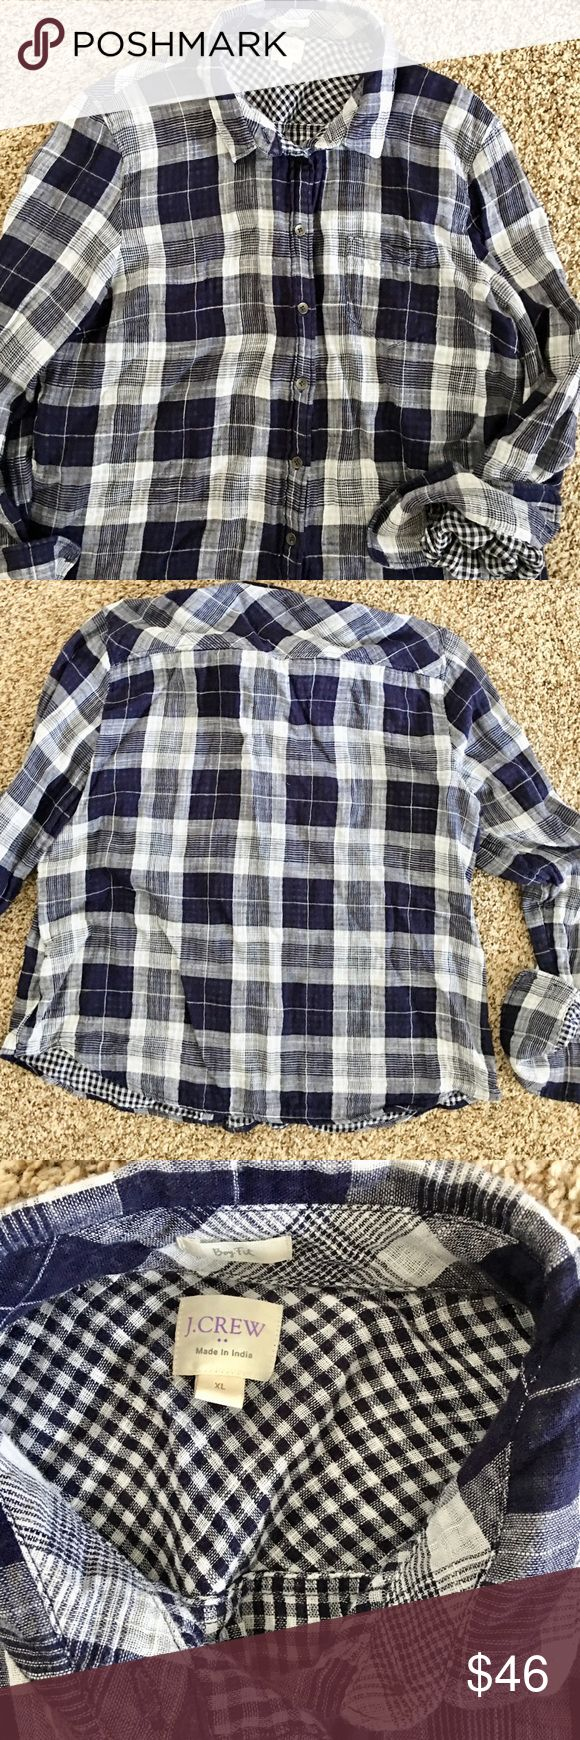 JCrew Flannel boy fit shirt. Worn once- too short for me.  Has a boxy fit to it.  Cute gingham contrast plaid in inside.  Navy and gray/cream large plaid on outside.  Lightweight flannel material.  Very cute, sad it doesn't look good on me. J. Crew Tops Button Down Shirts